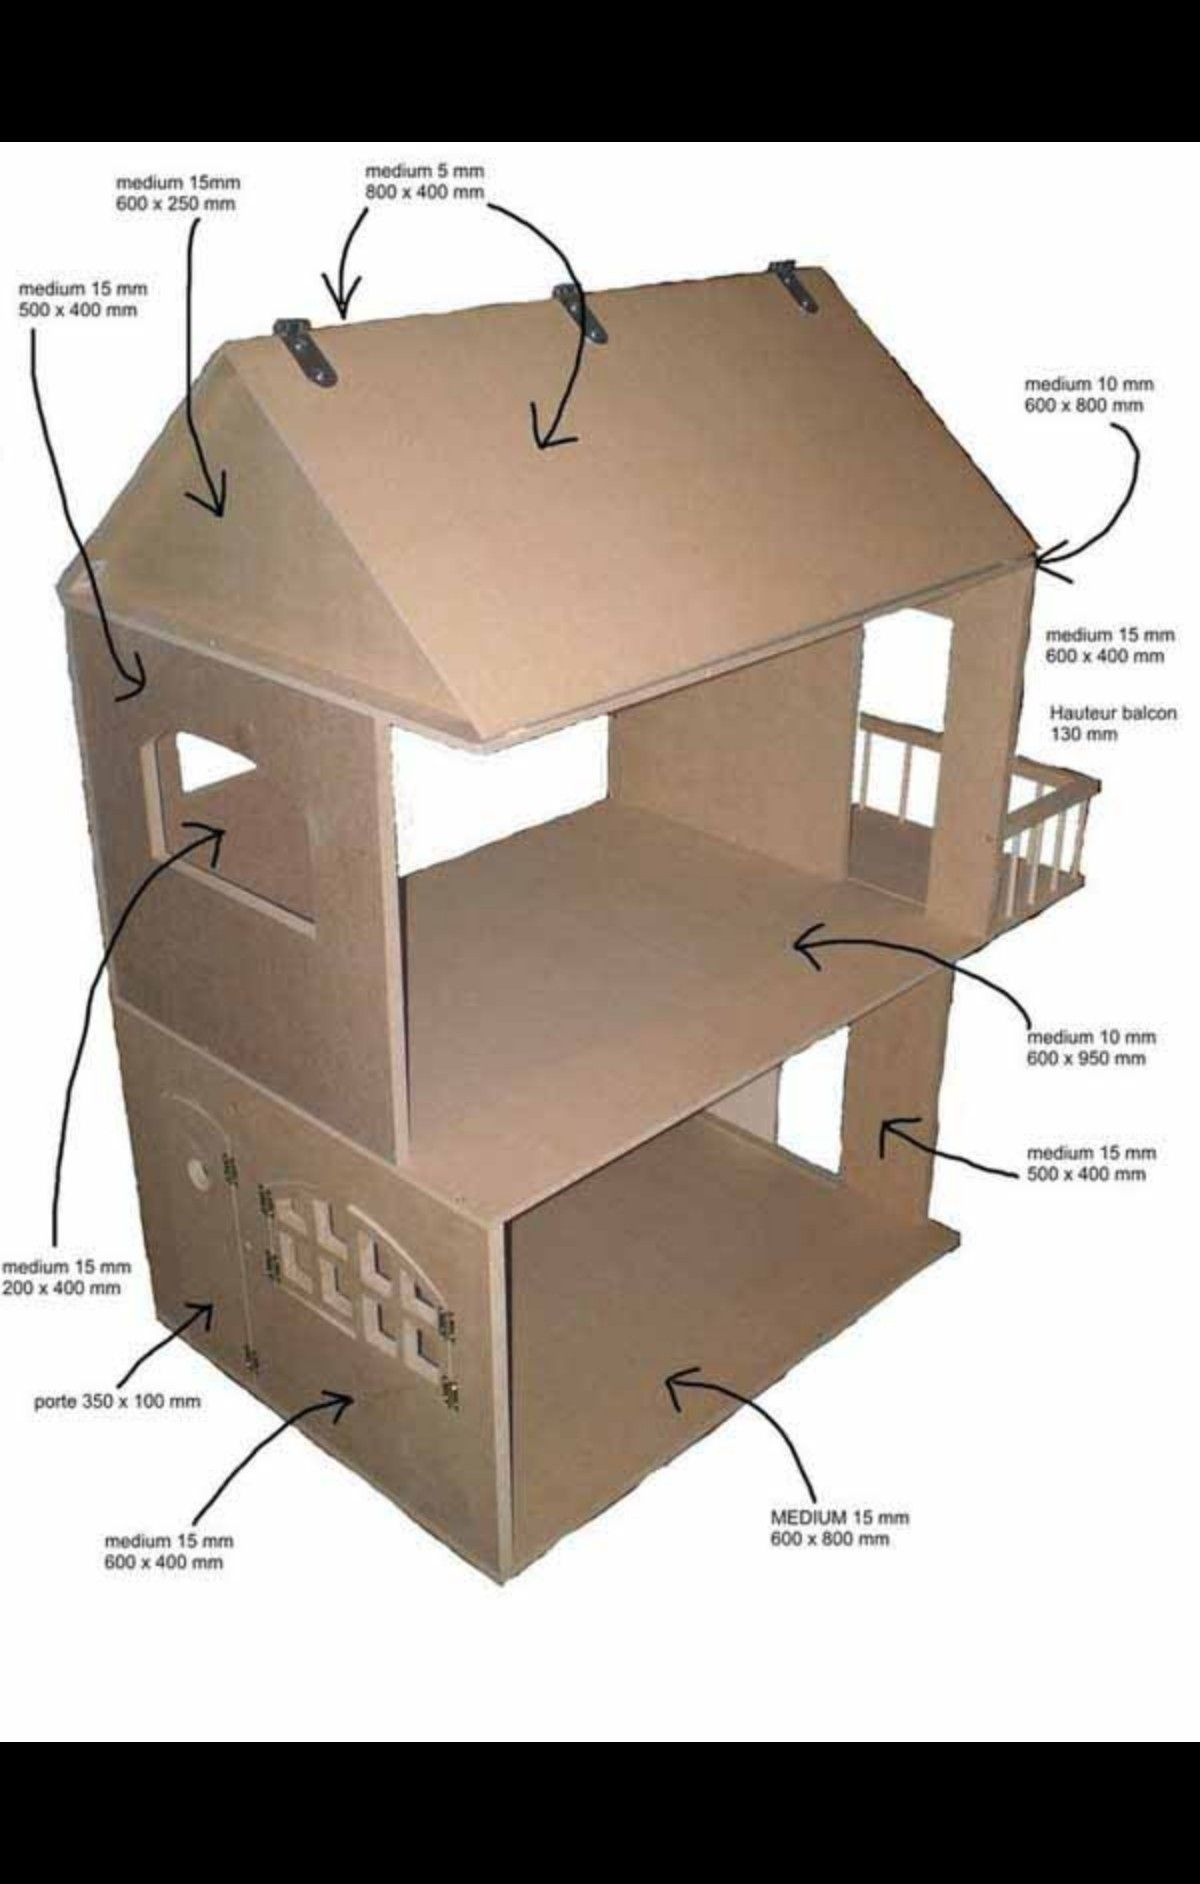 Pin By Adimar On Casine Small House - Pinterest -